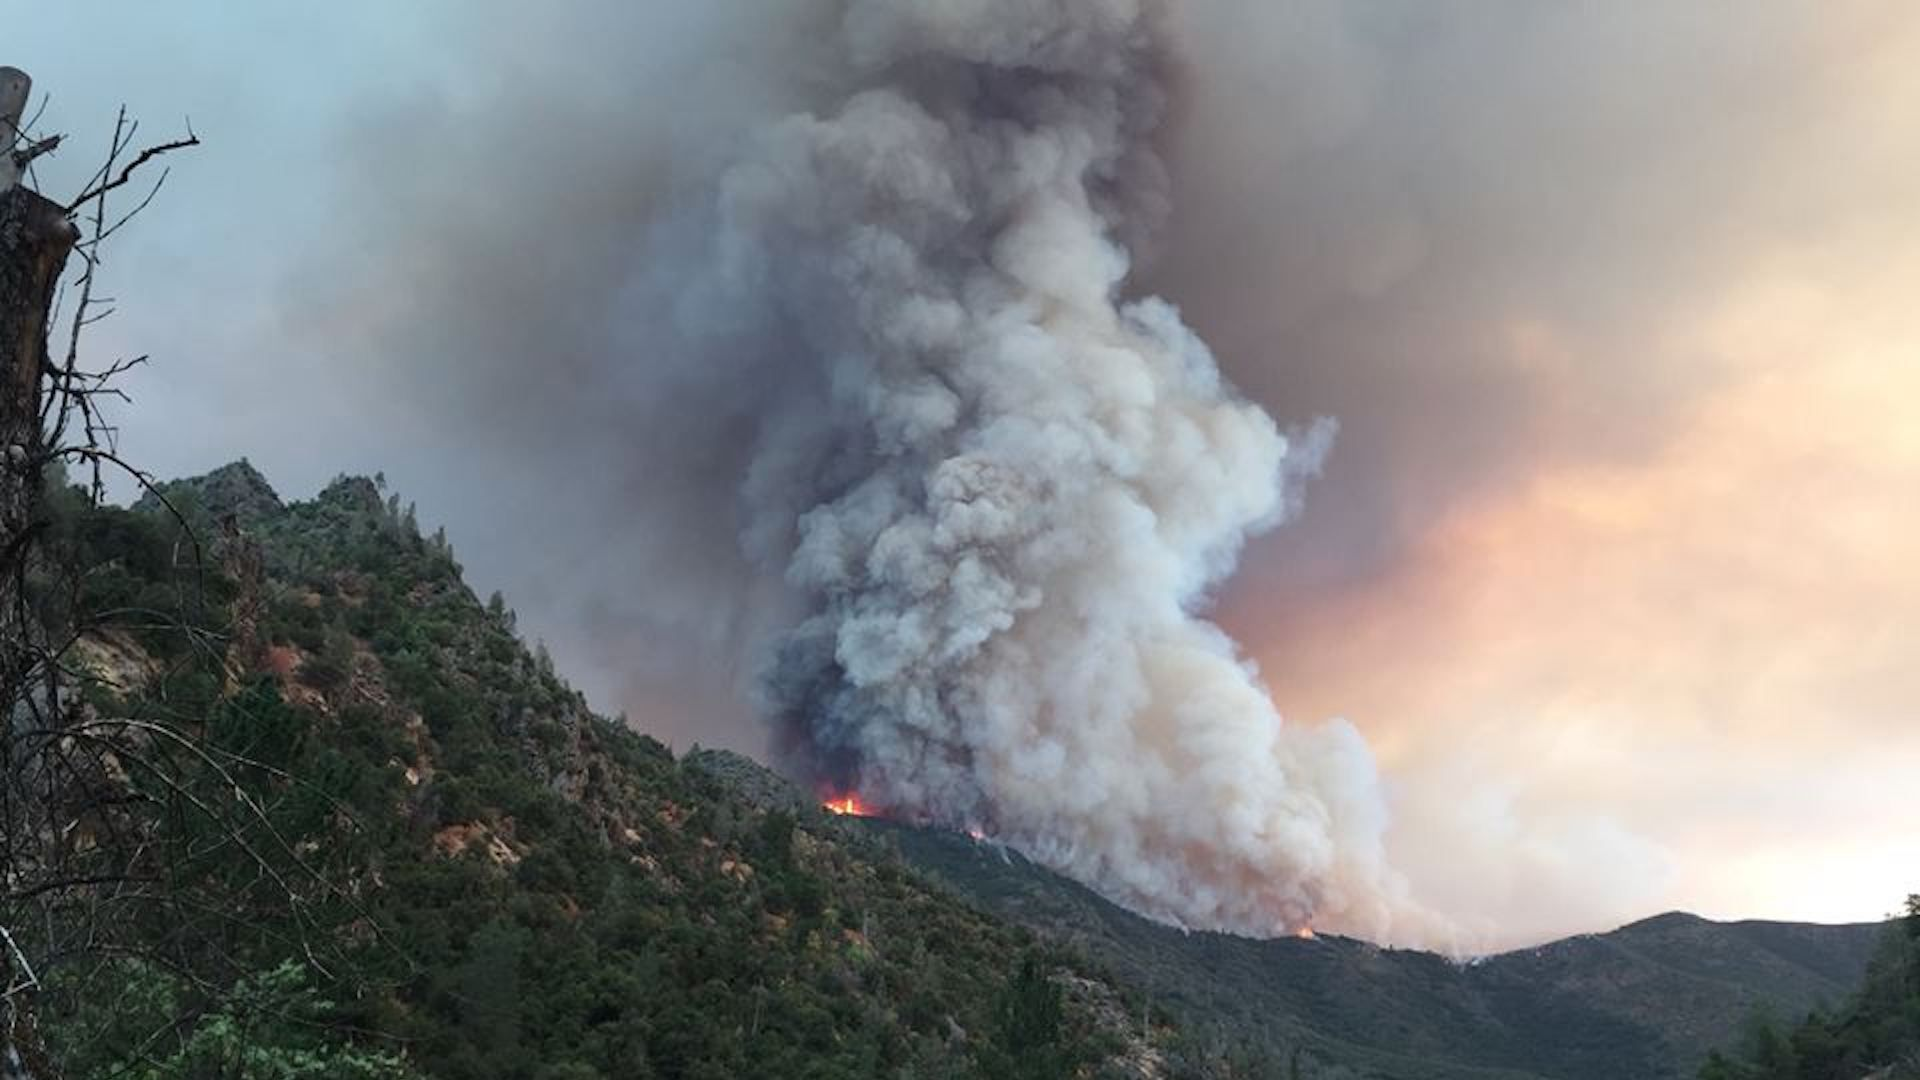 Ferguson fire burns in the Sierra National Forest near Yosemite National Park on July 16, 2018.